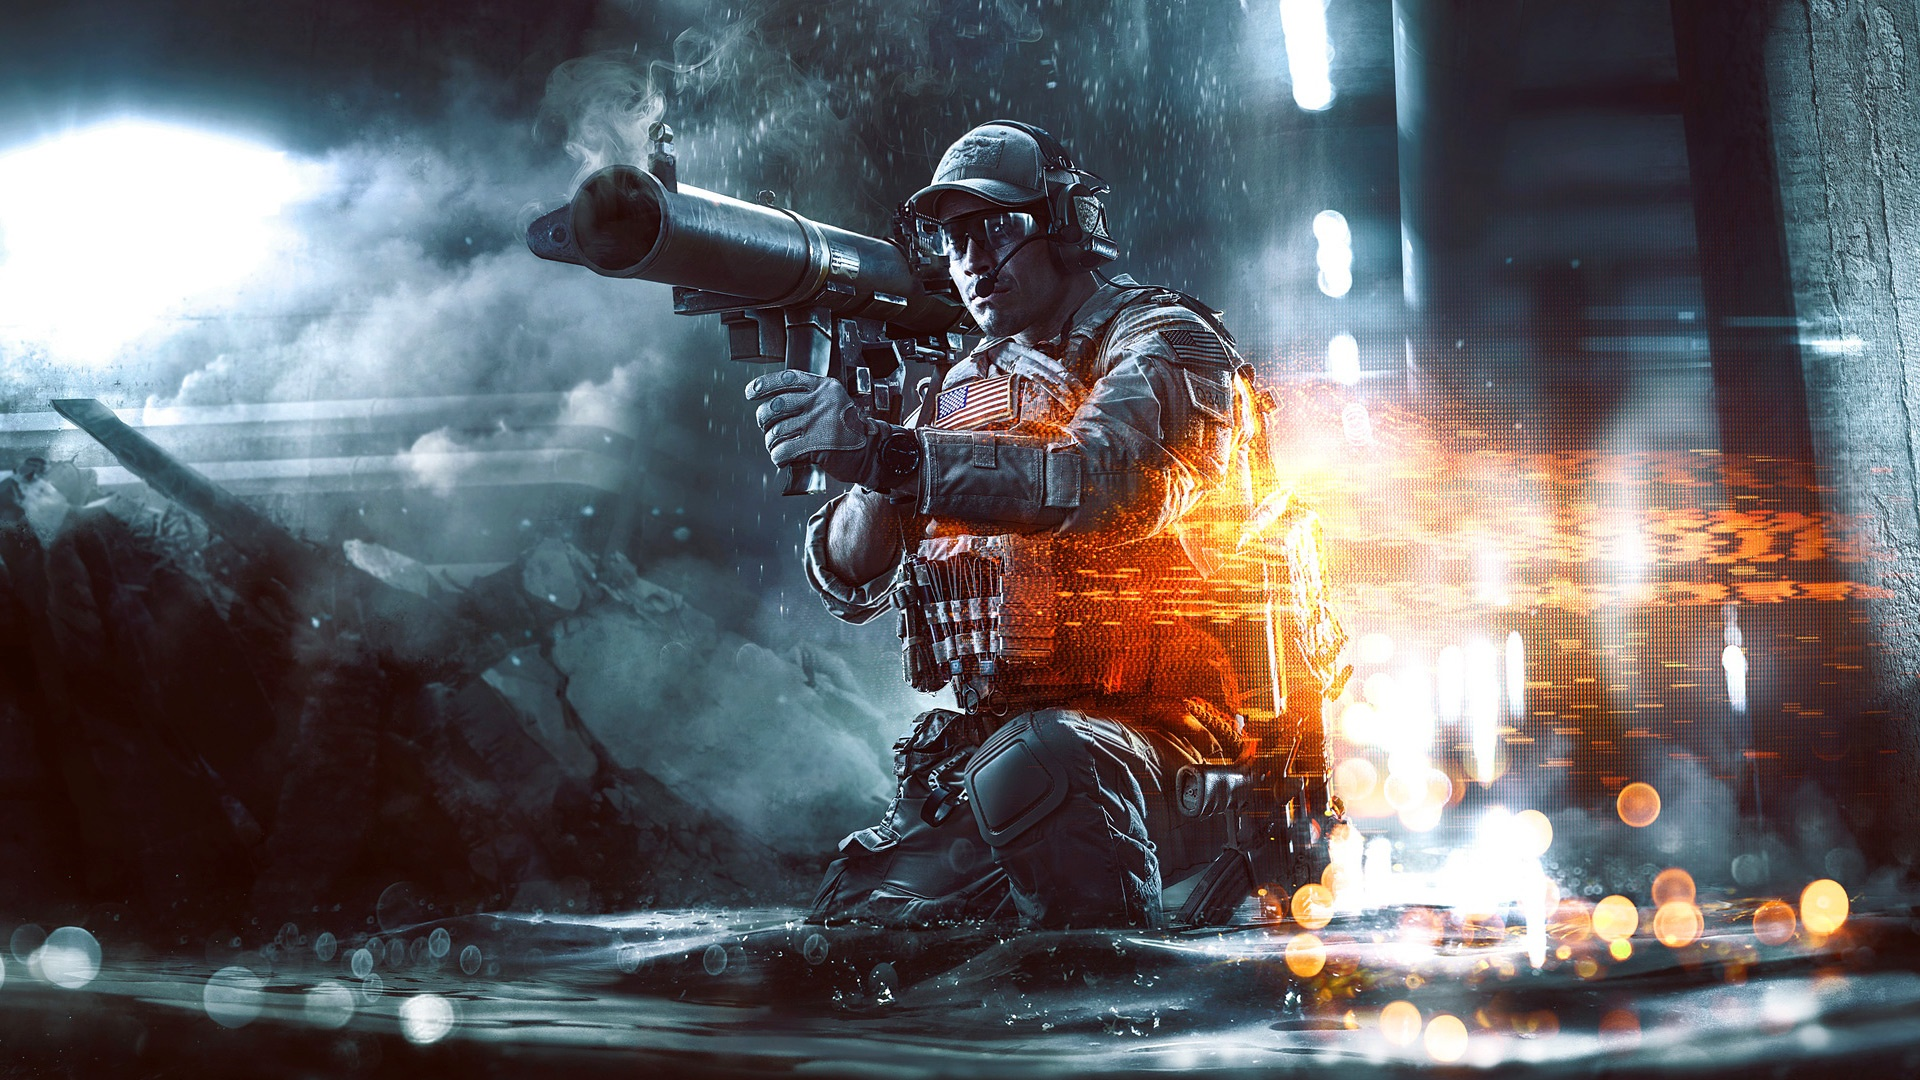 1536x2048 battlefield 4 wallpaper - photo #7